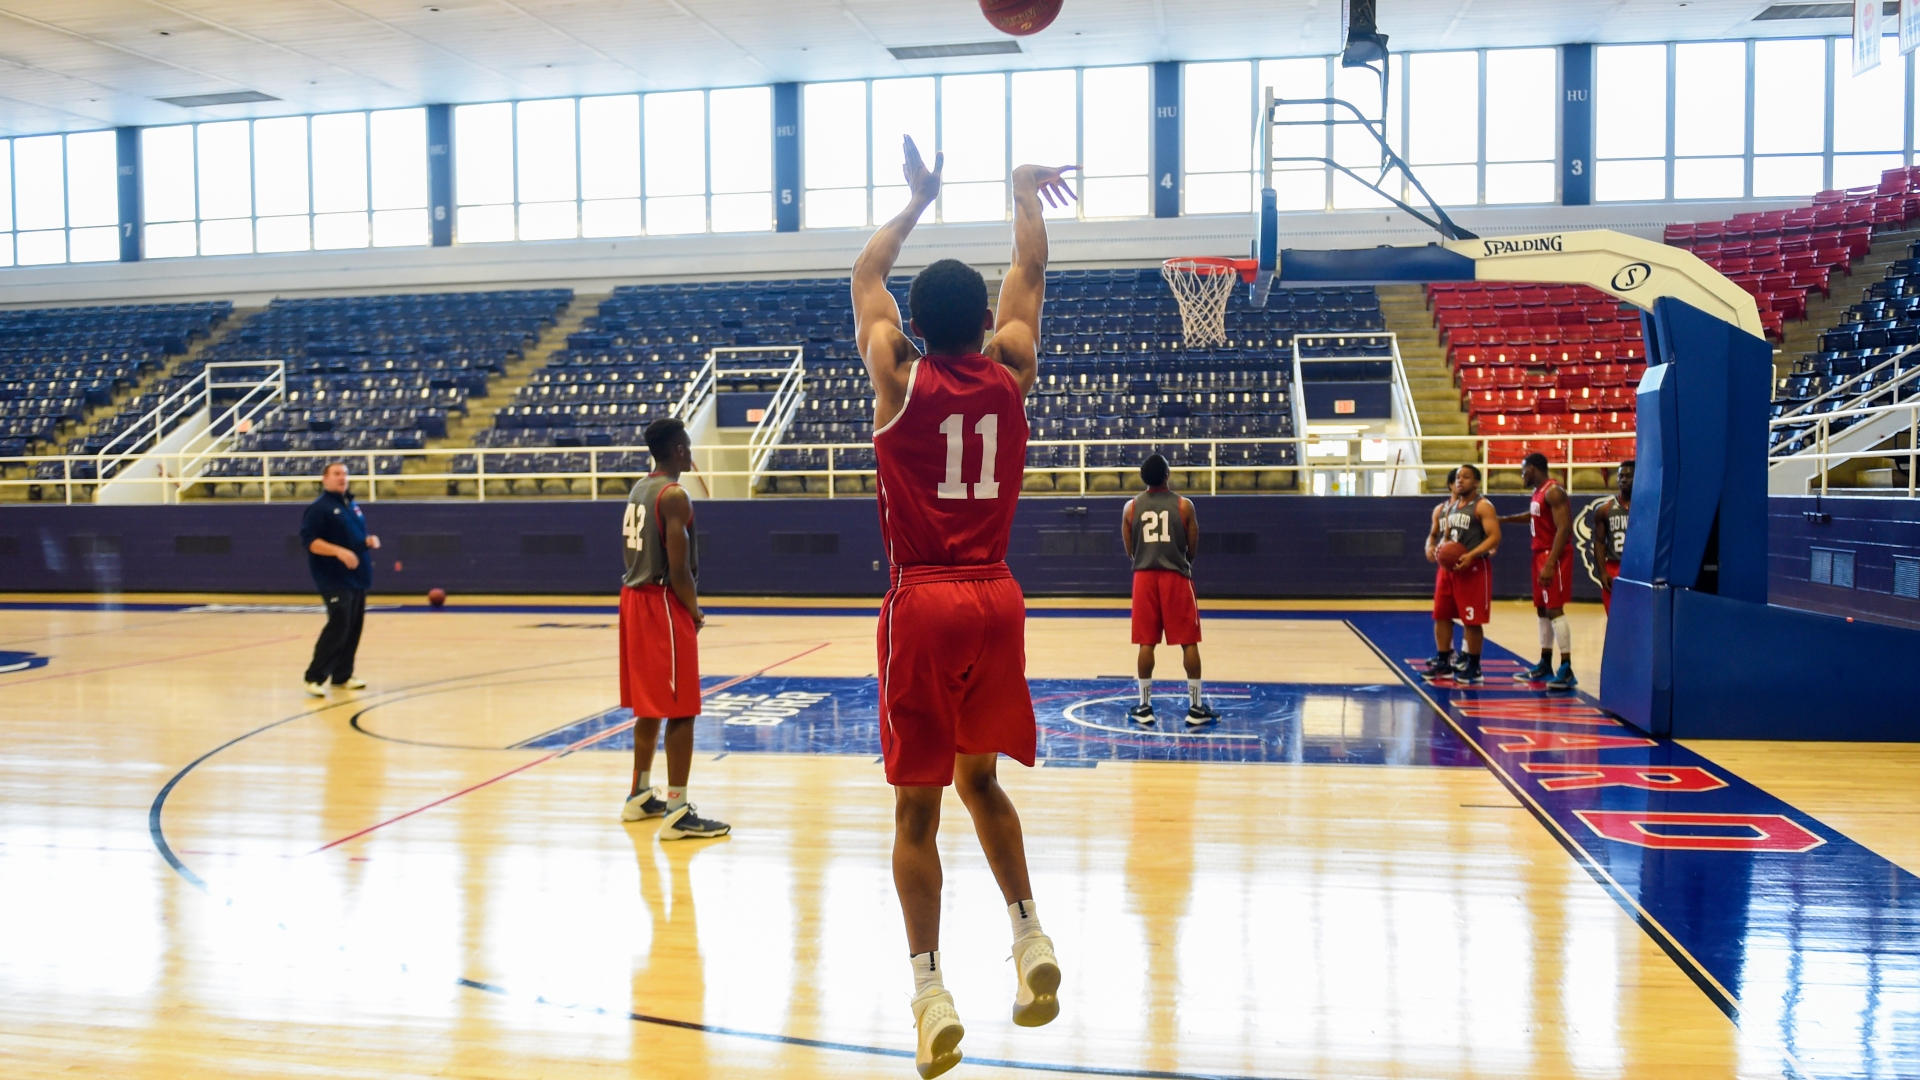 Feature on Howard basketball player #11 James Daniel, who is currently the leading scorer in Division I college basketball.